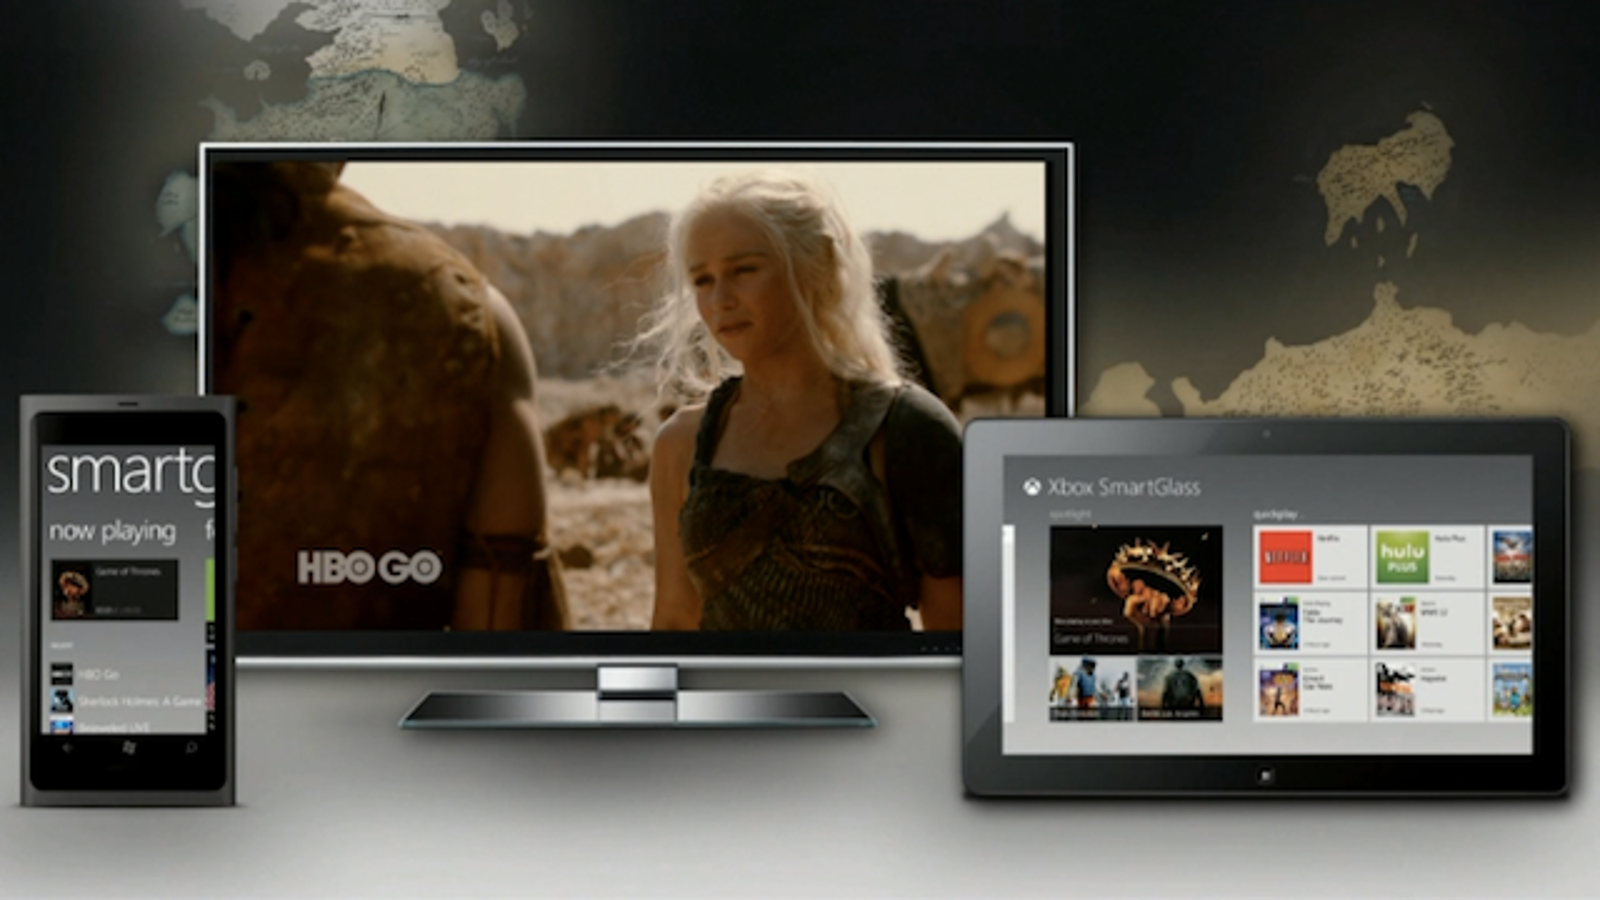 What Is Xbox SmartGlass?